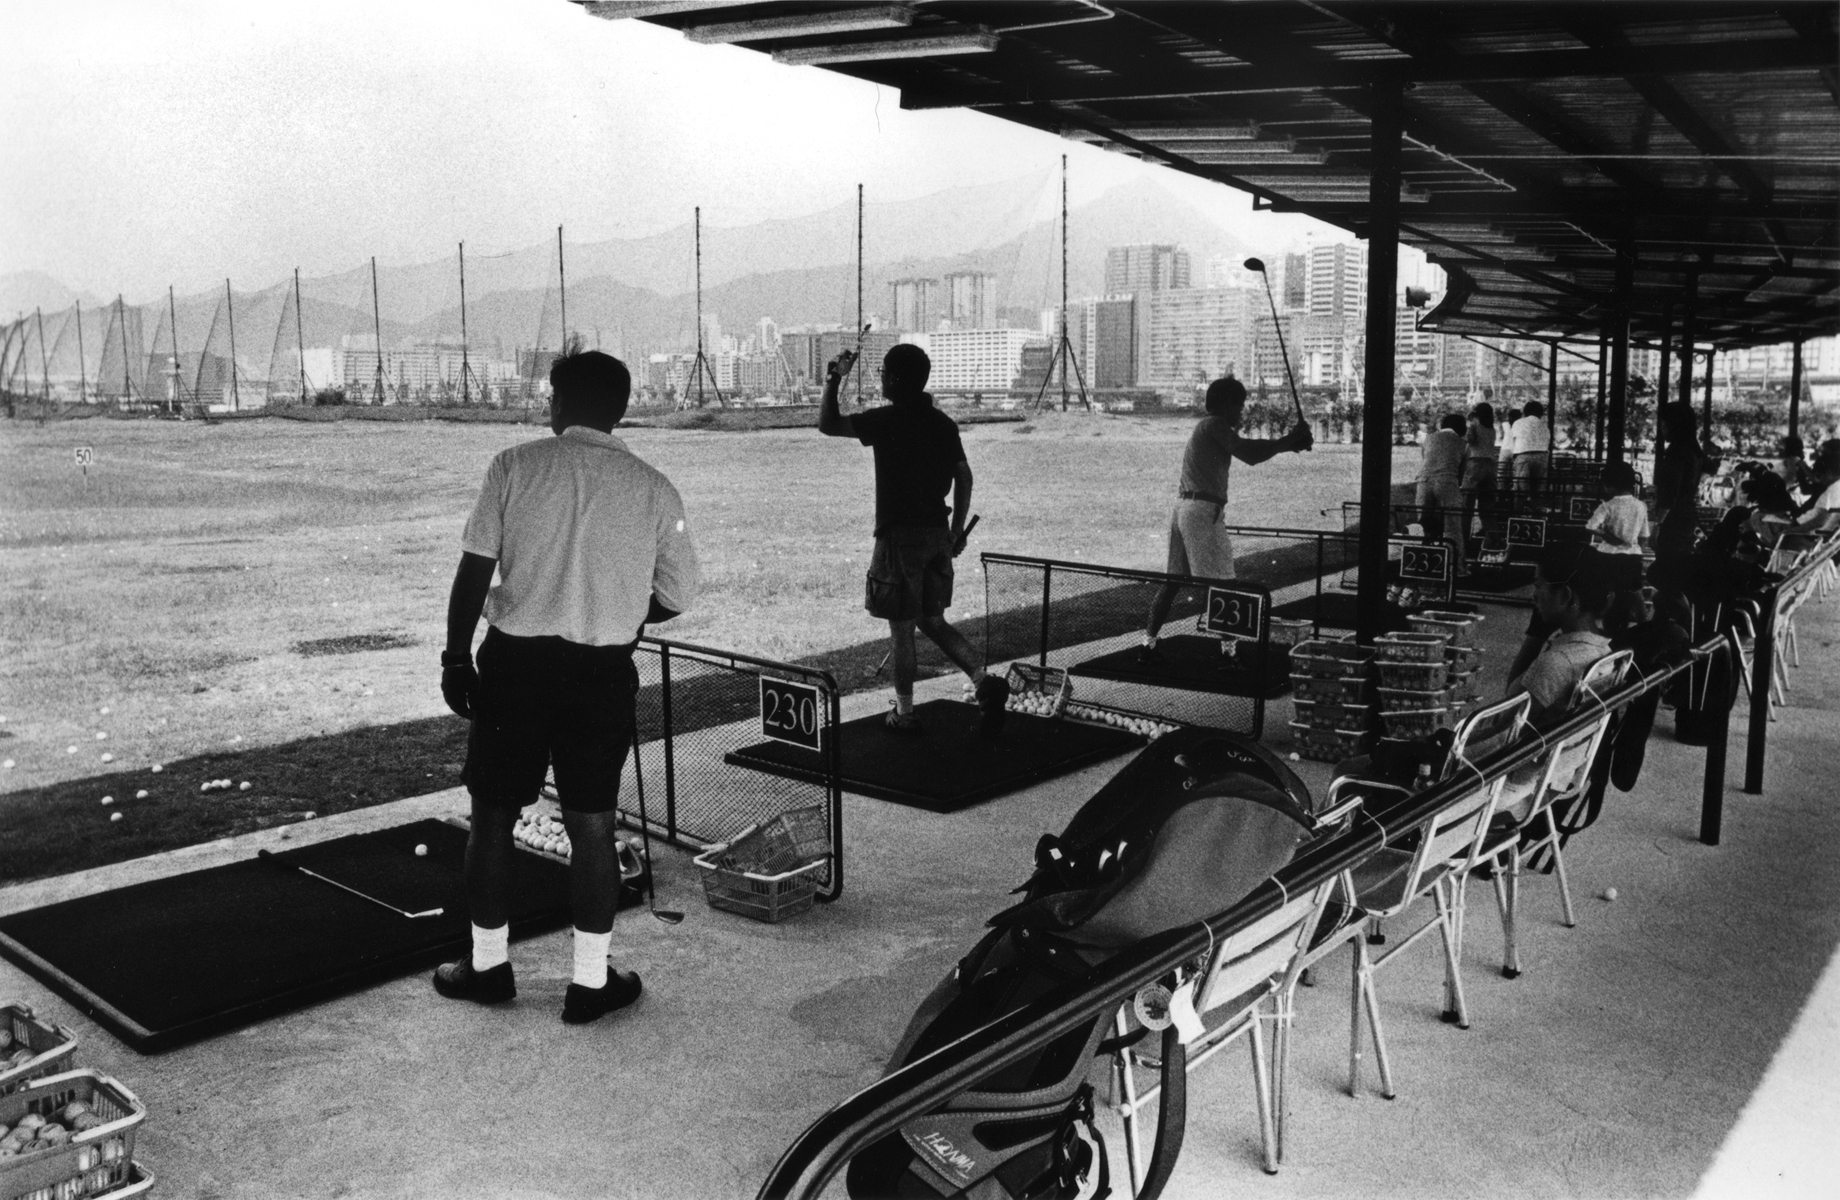 Hong Kongers enjoy an afternoon on the driving range of the once infamous Hong Kong Kai Tak International Airport. The story of Kai Tak started in 1922 when two businessmen Ho Kai and Au Tak formed the Kai Tak Investment Company in order to reclaim land in Kowloon for development. The land was acquired by the government for use as an airfield after the business plan failed. In 1924, Harry Abbott opened The Abbott School of Aviation on the piece of land. Soon, it became a small grass strip airport for the RAF and several flying clubs which, over time, grew to include the Hong Kong Flying Club, the Far East Flying Training School, and the Aero Club of Hong Kong which exist today as an amalgamation known as the Hong Kong Aviation Club. In 1928, a concrete slipway was built for seaplanes that used the adjoining Kowloon Bay which can be seen in old photographs. The first control tower and hangar at Kai Tak were built in 1935. In 1936, the first domestic airline in Hong Kong was established.Hong Kong Island